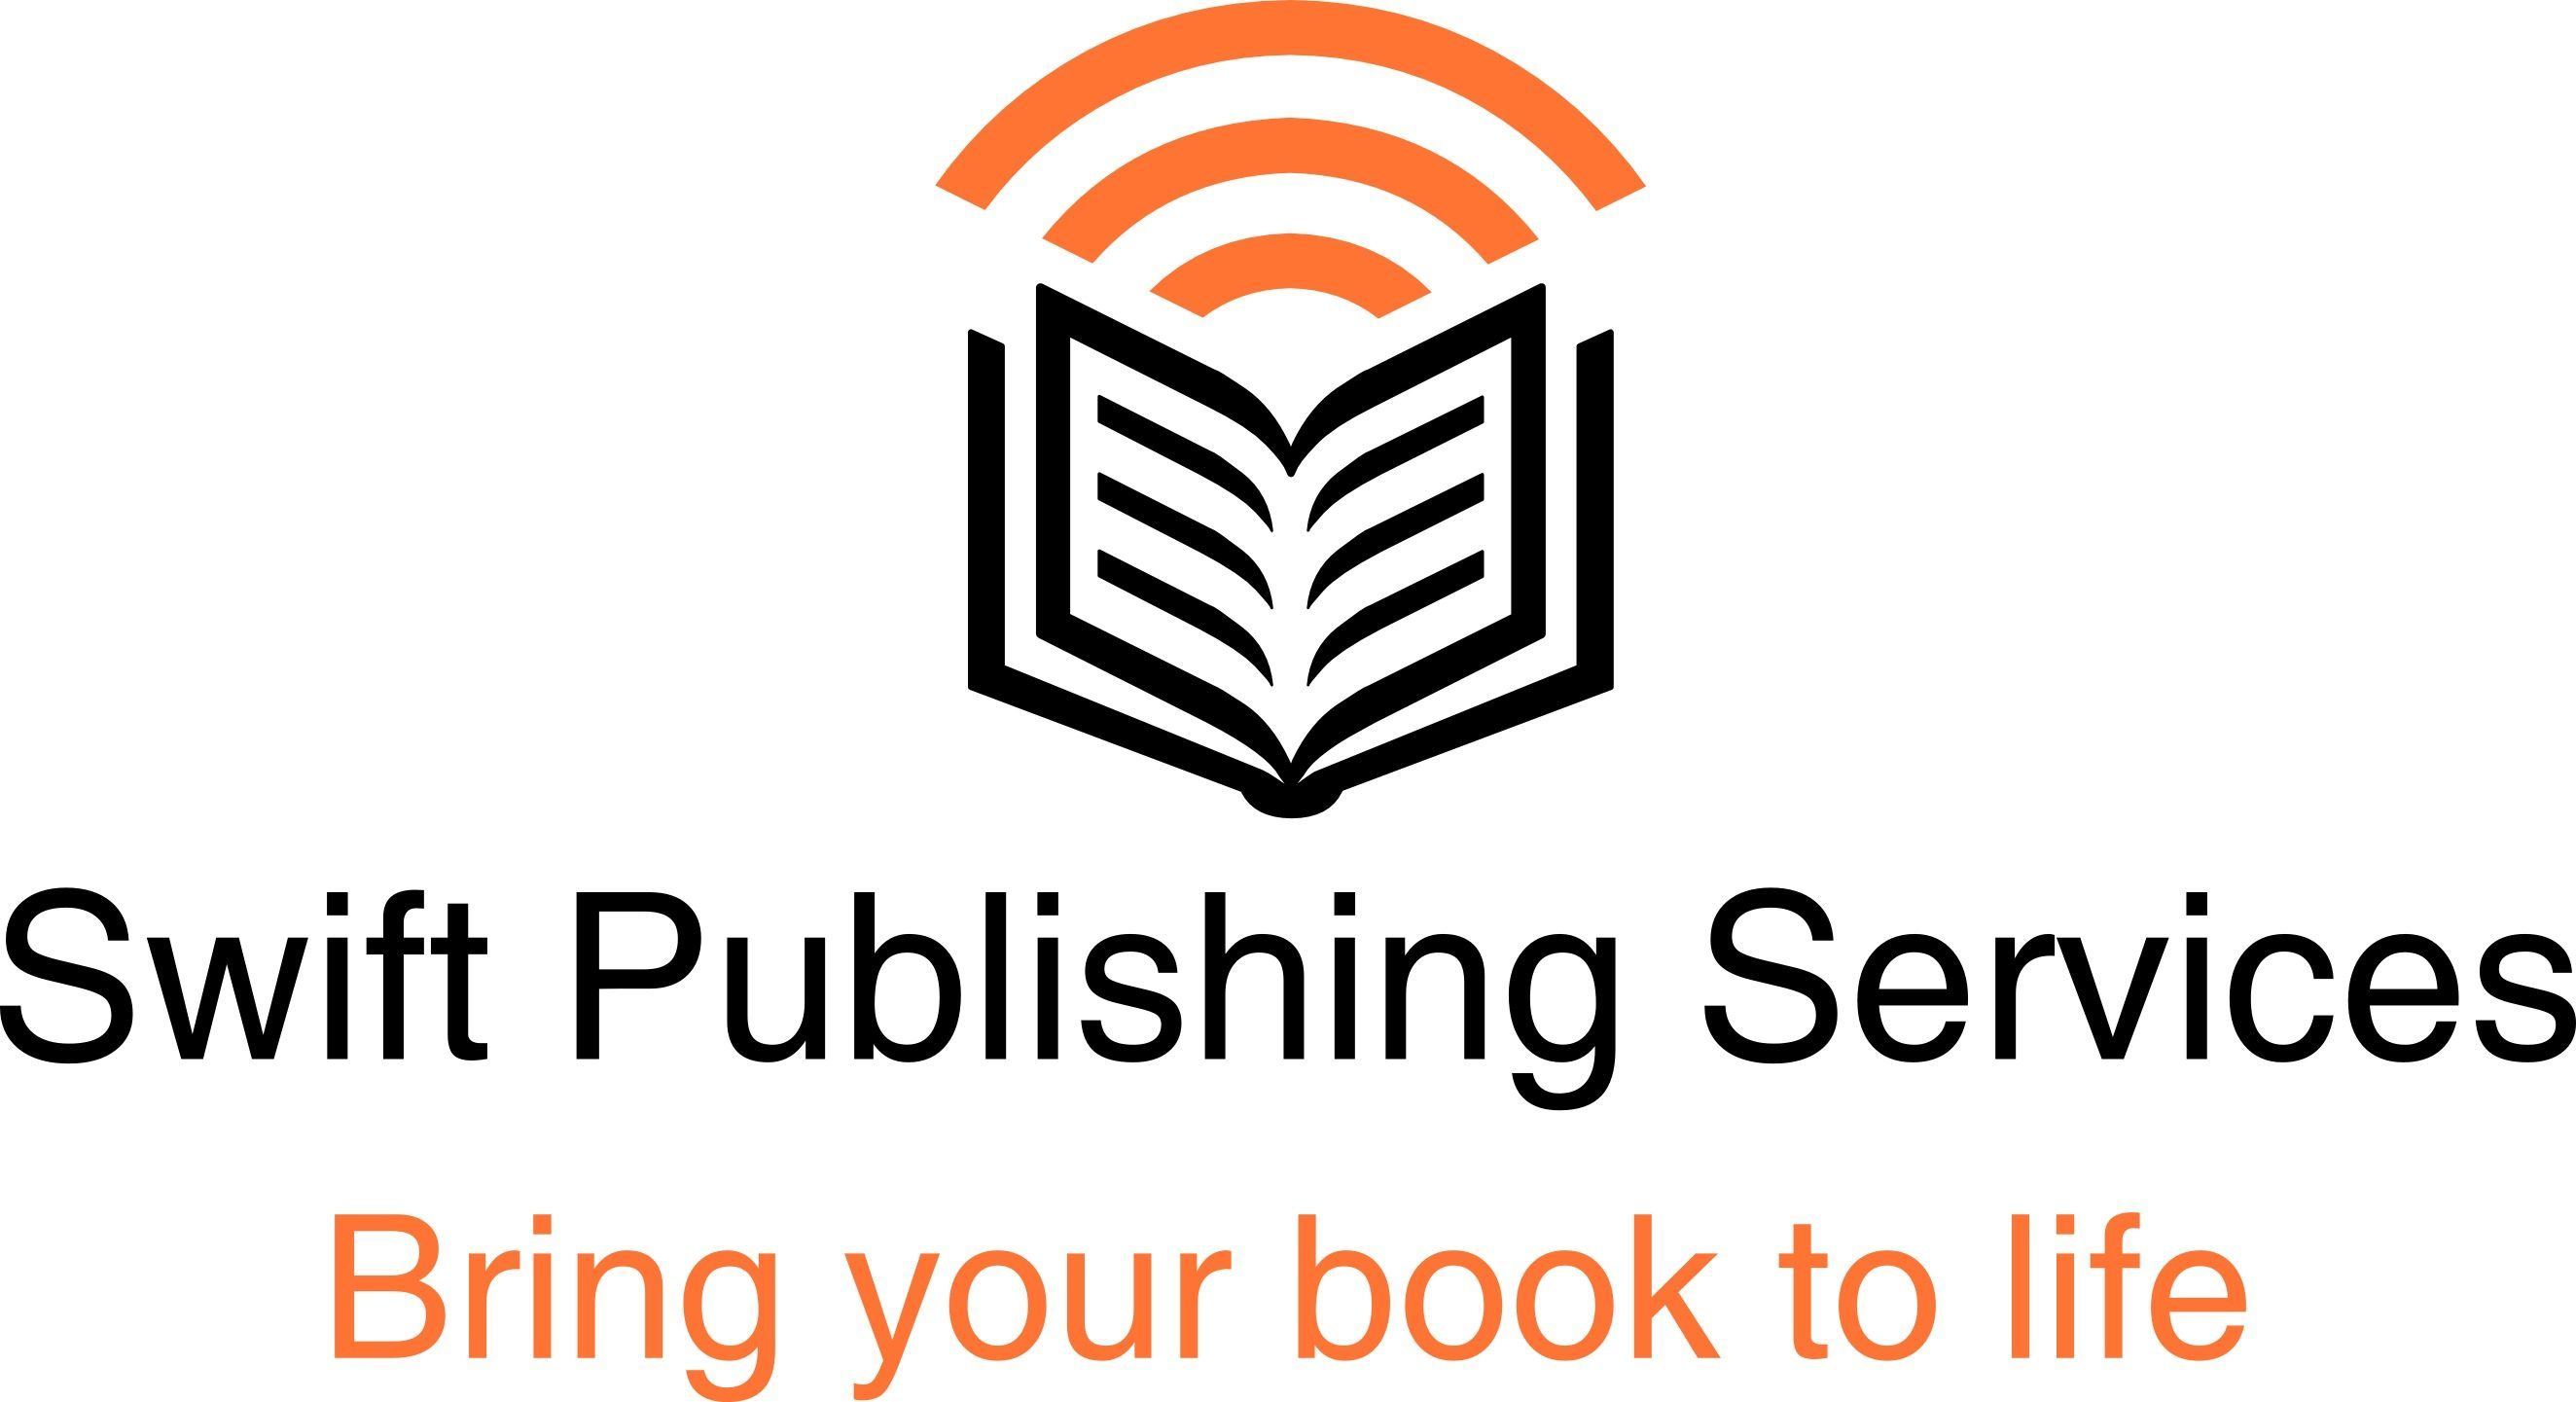 Swift Publishing Services